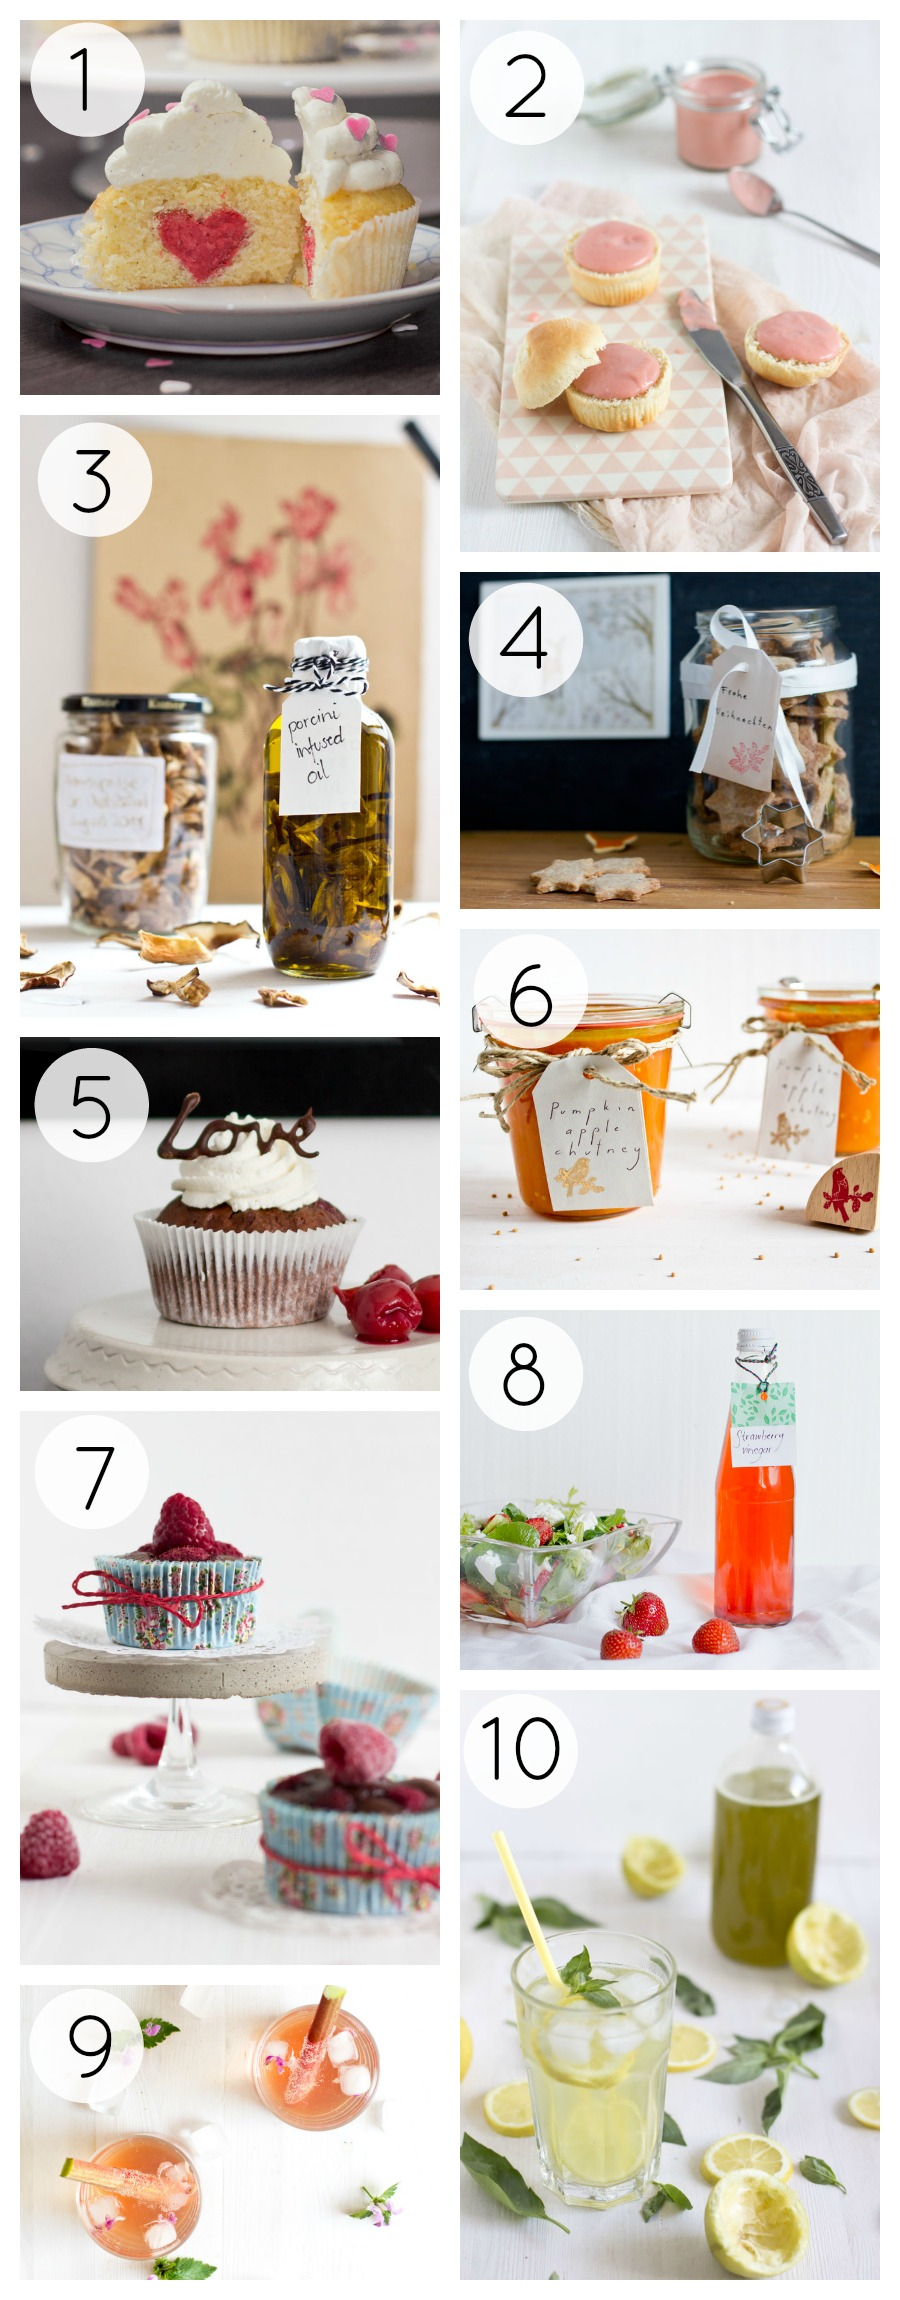 Top 10 of 2015: Food posts | LOOK WHAT I MADE ...